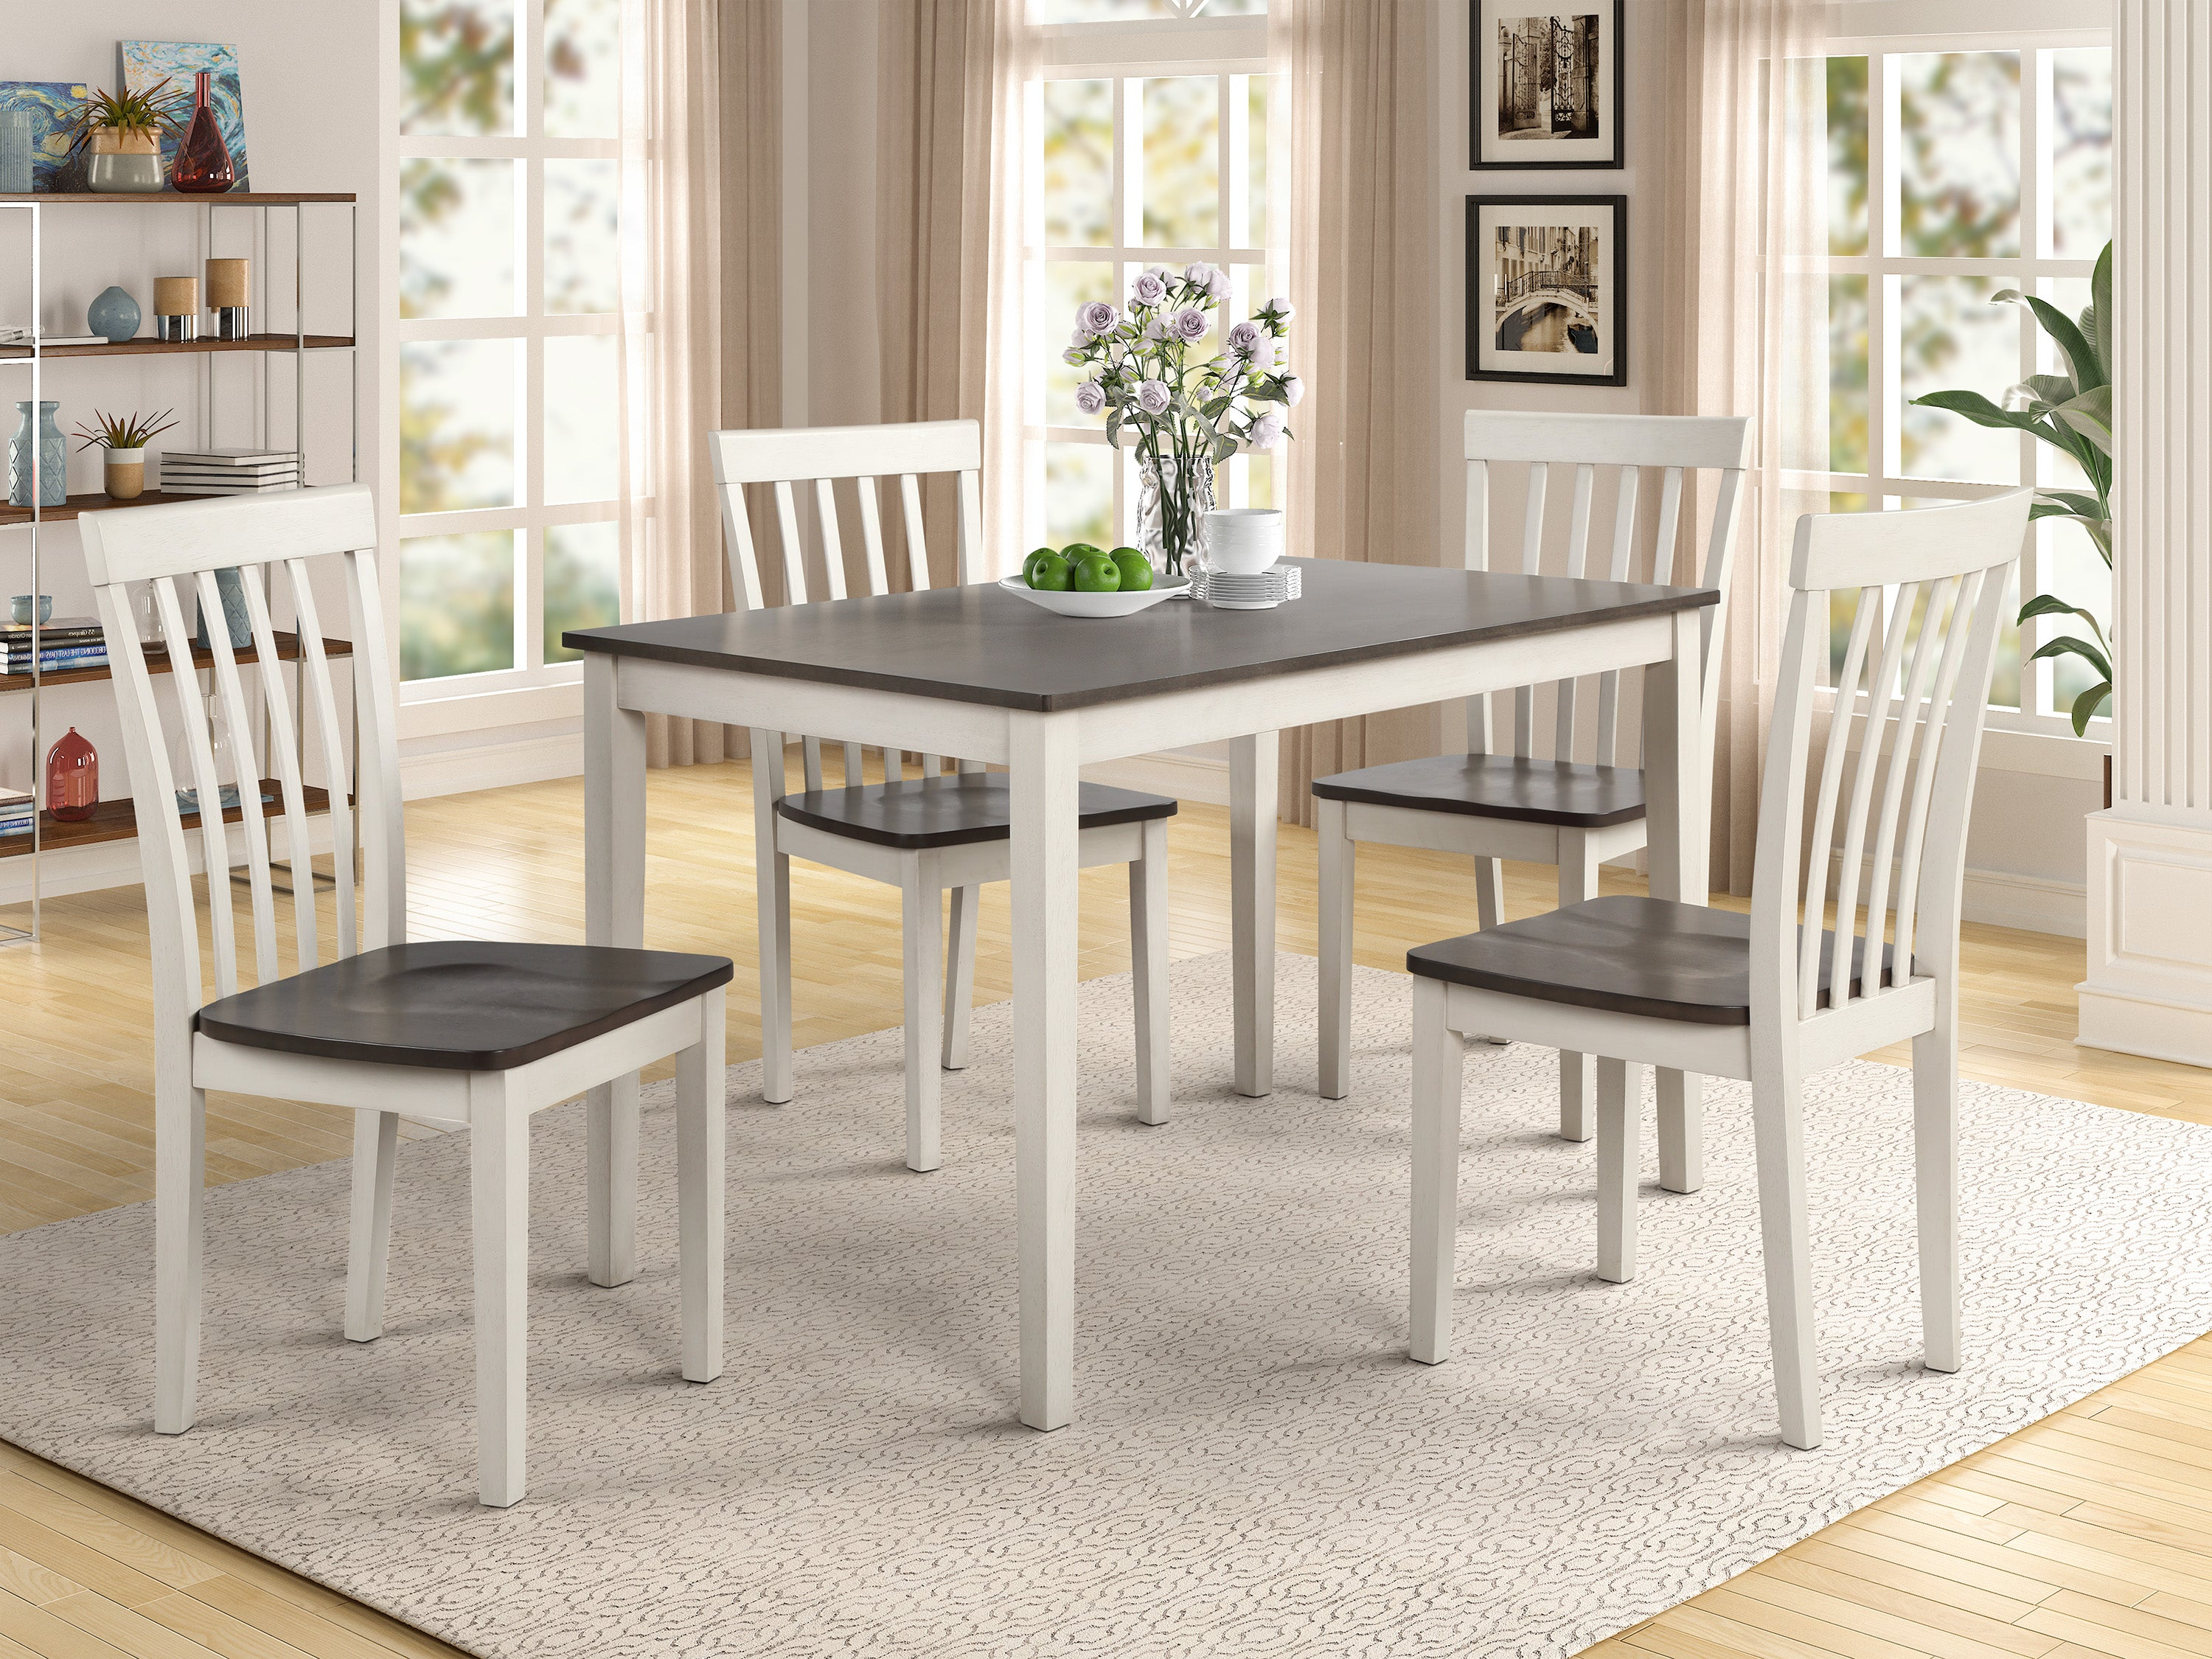 Farmhouse White and Gray Dinette Set